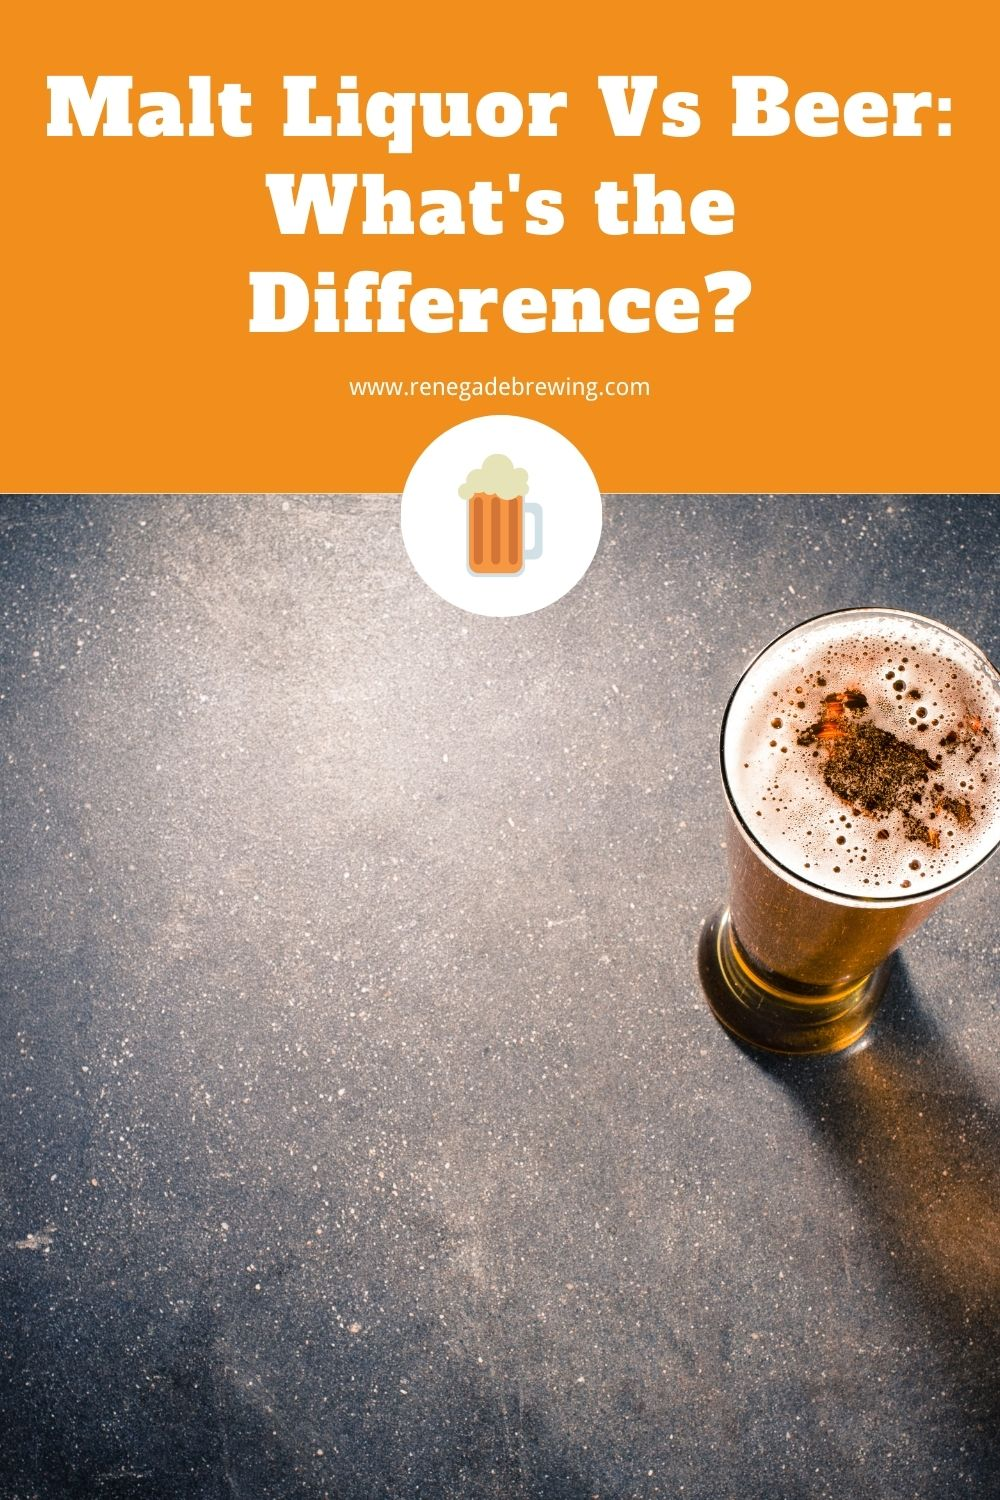 Malt Liquor Vs Beer What's the Difference 2